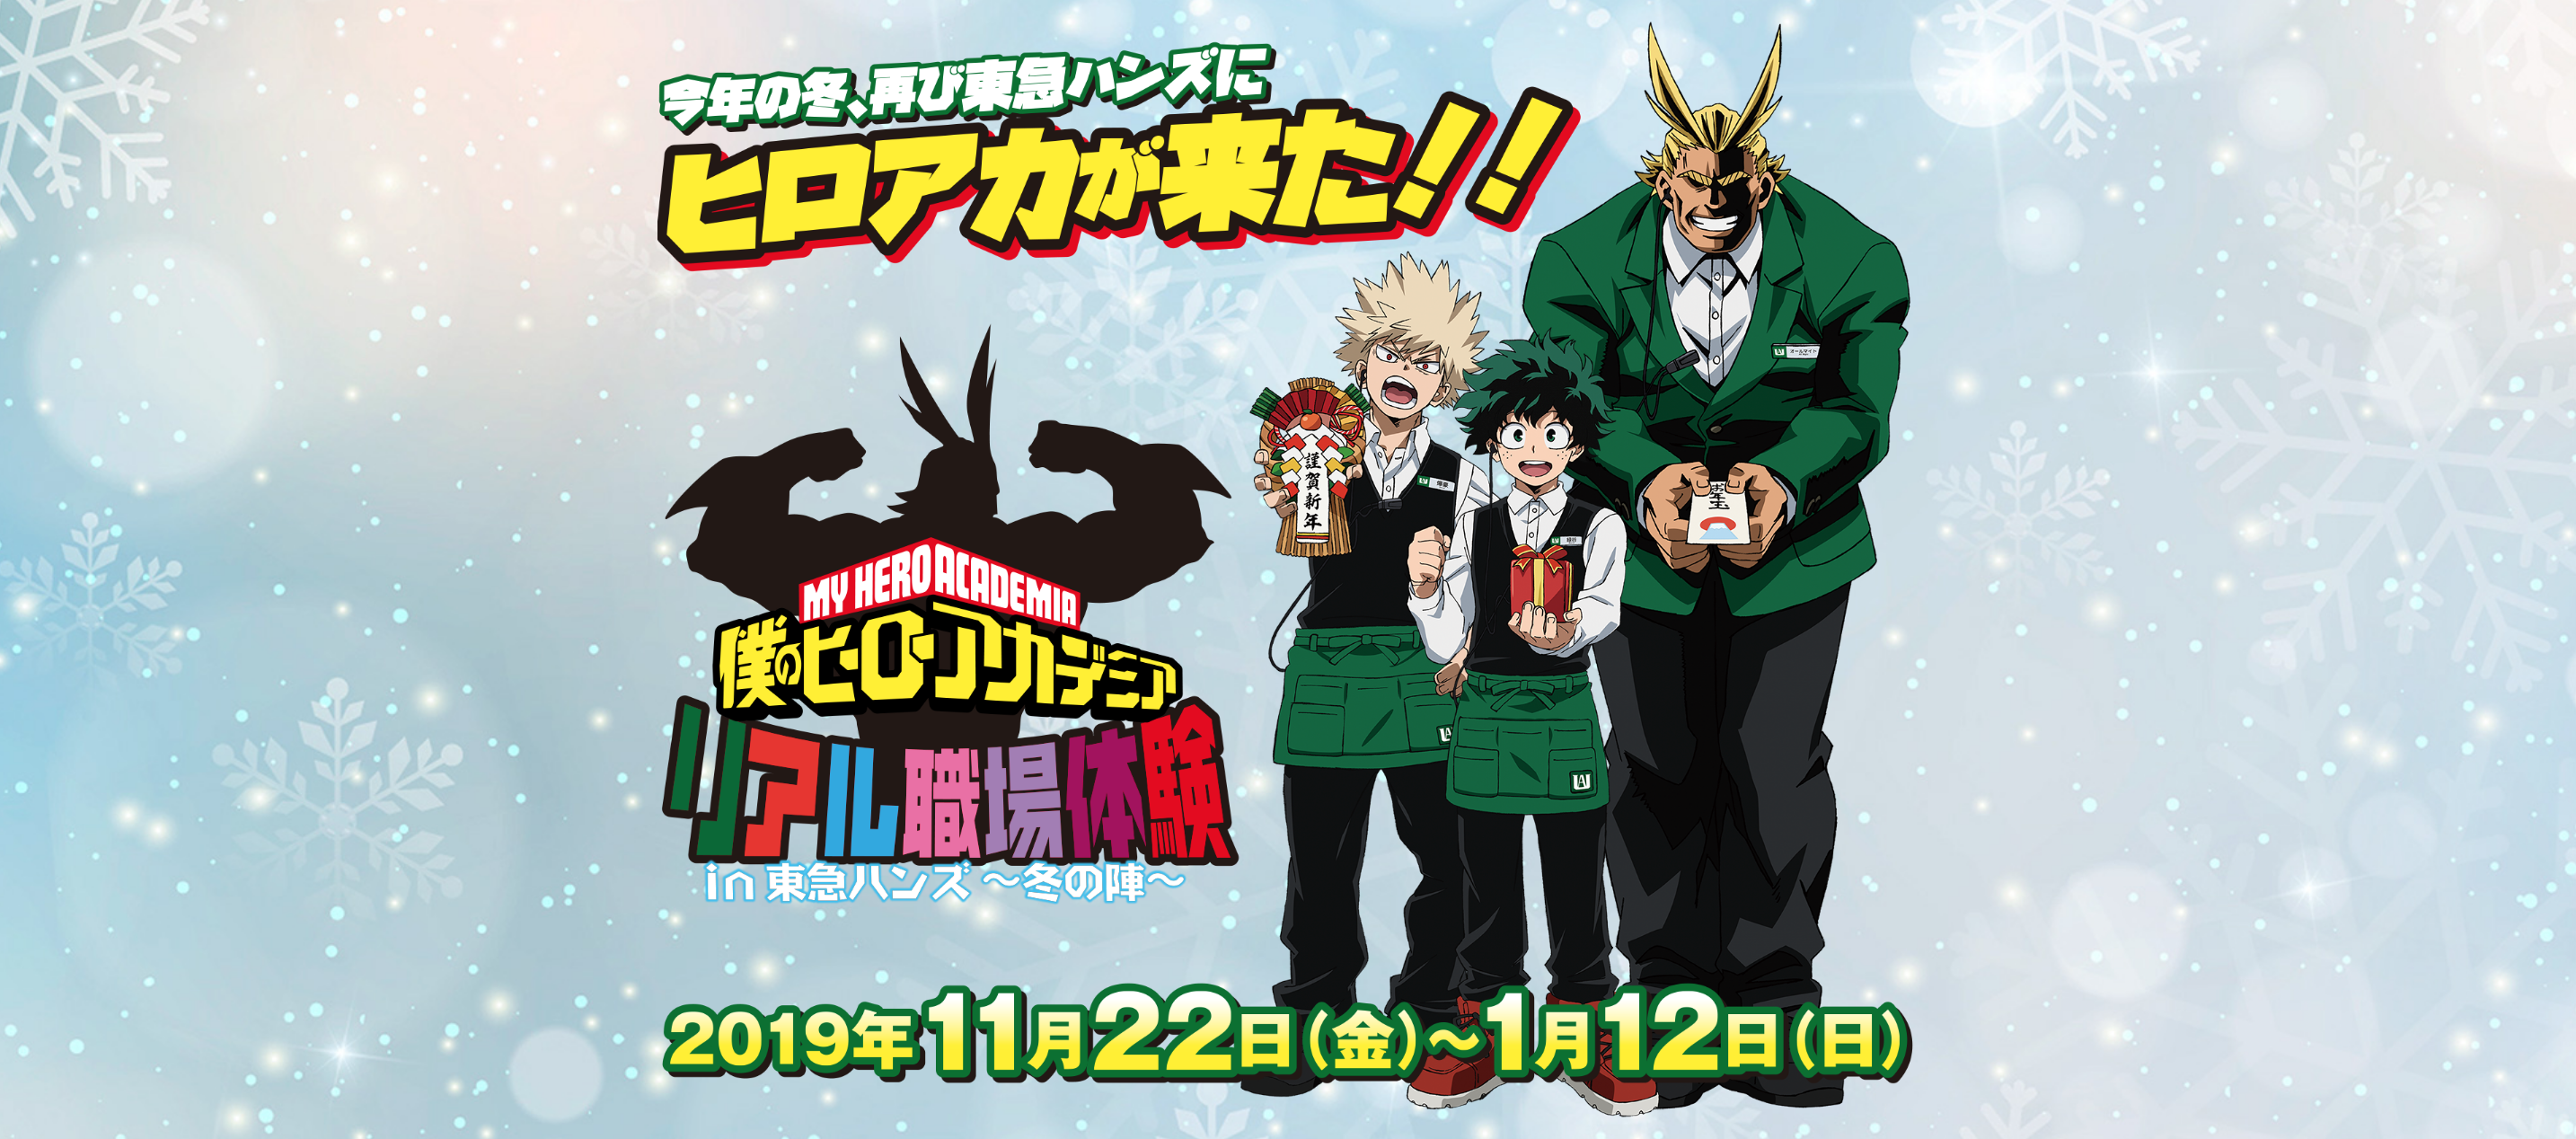 Tokyu Hands is having another Boku No Hero Academia Collaboration this Winter 2019!